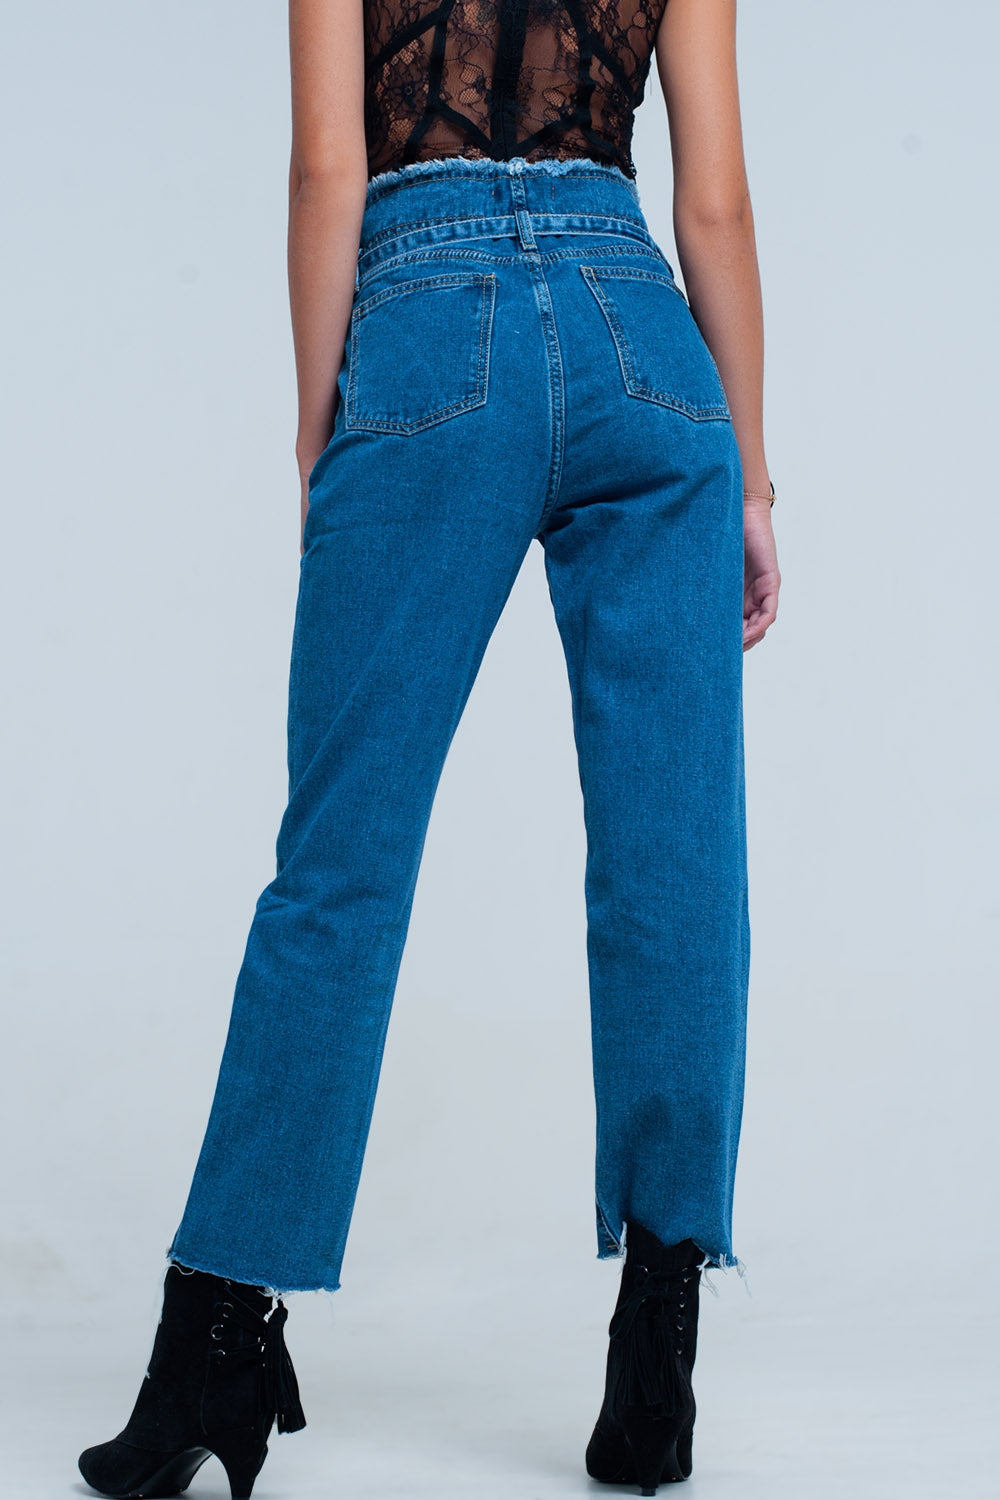 10ef488bce548 Jeans - Women s Plus Size Blue Frayed Pocket Jeans at Fashiontage ...